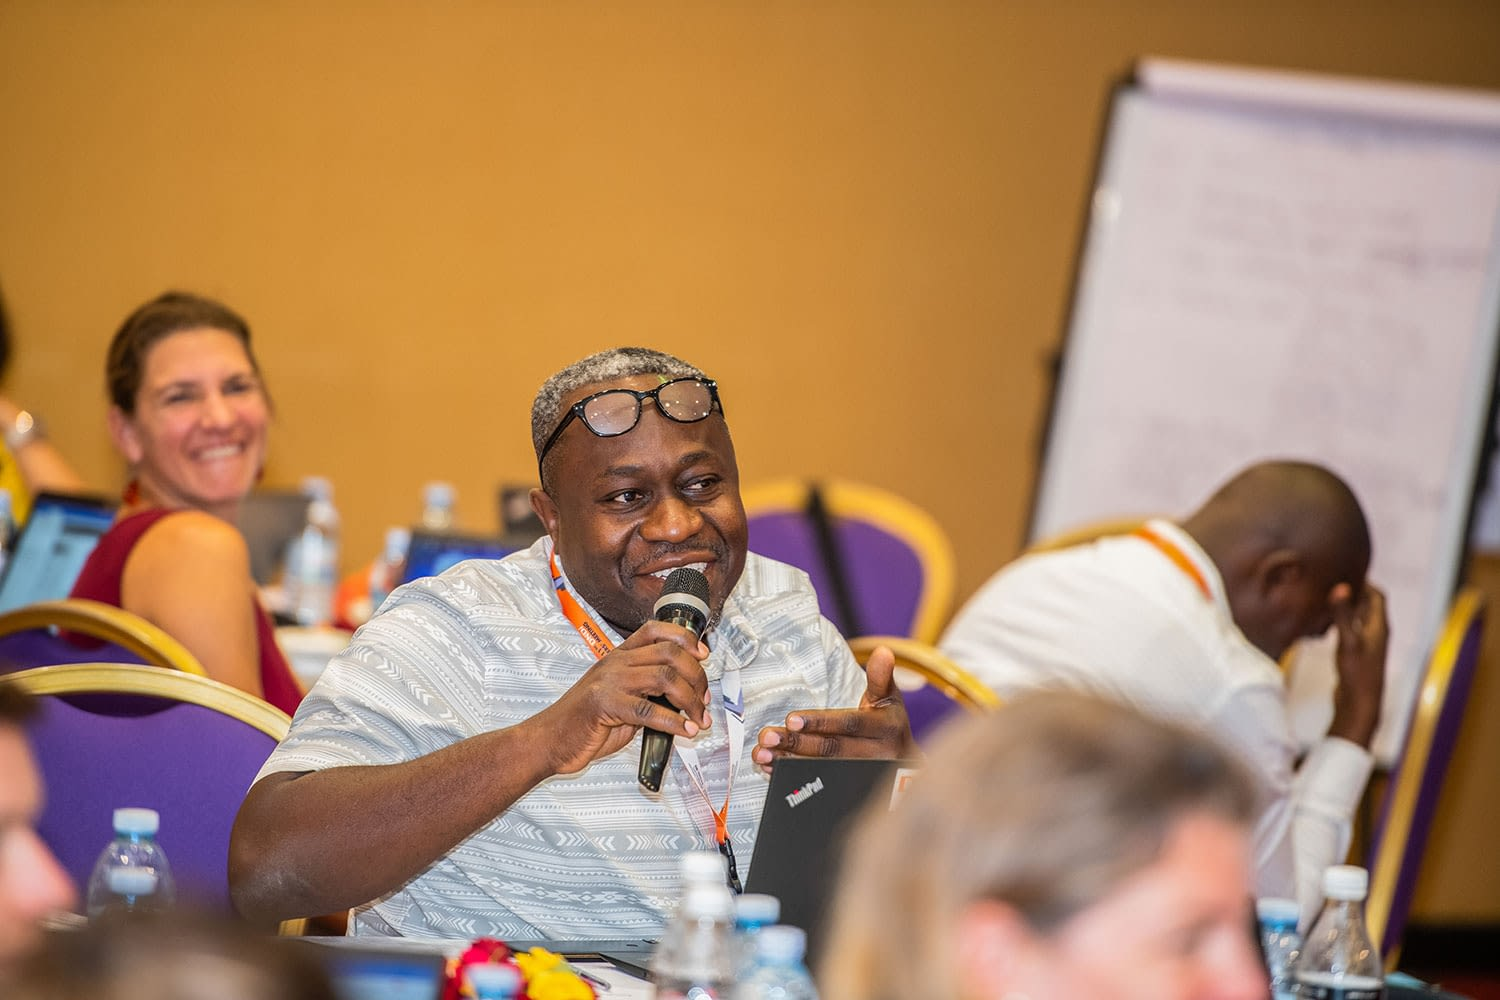 Dr Wilfried Mutombo, of the HAT platform, raises a point during the clinical trial training meeting.